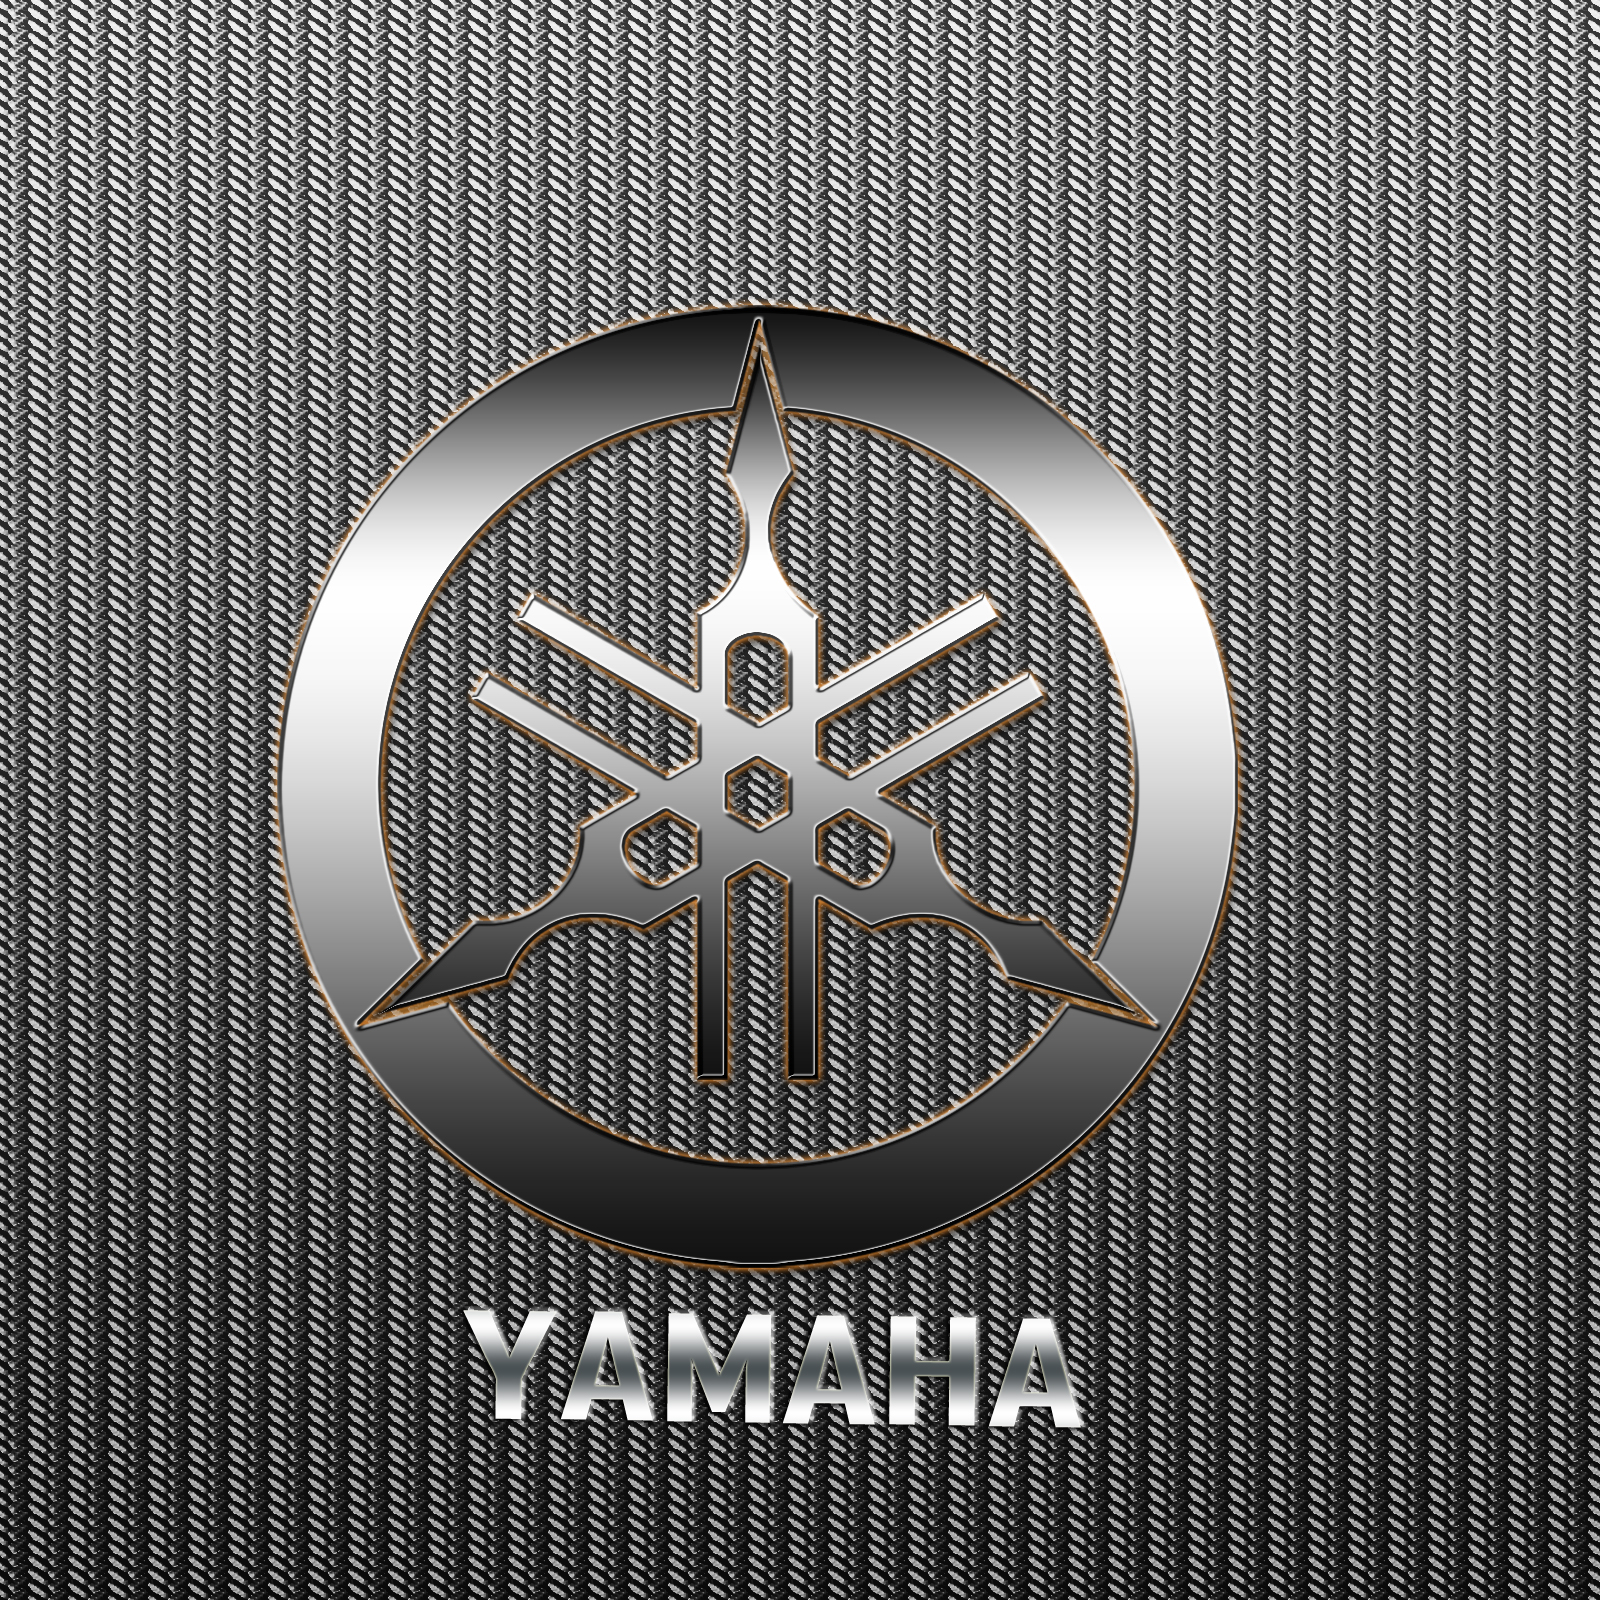 Yamaha Logo By Hermantotaicho On Deviantart